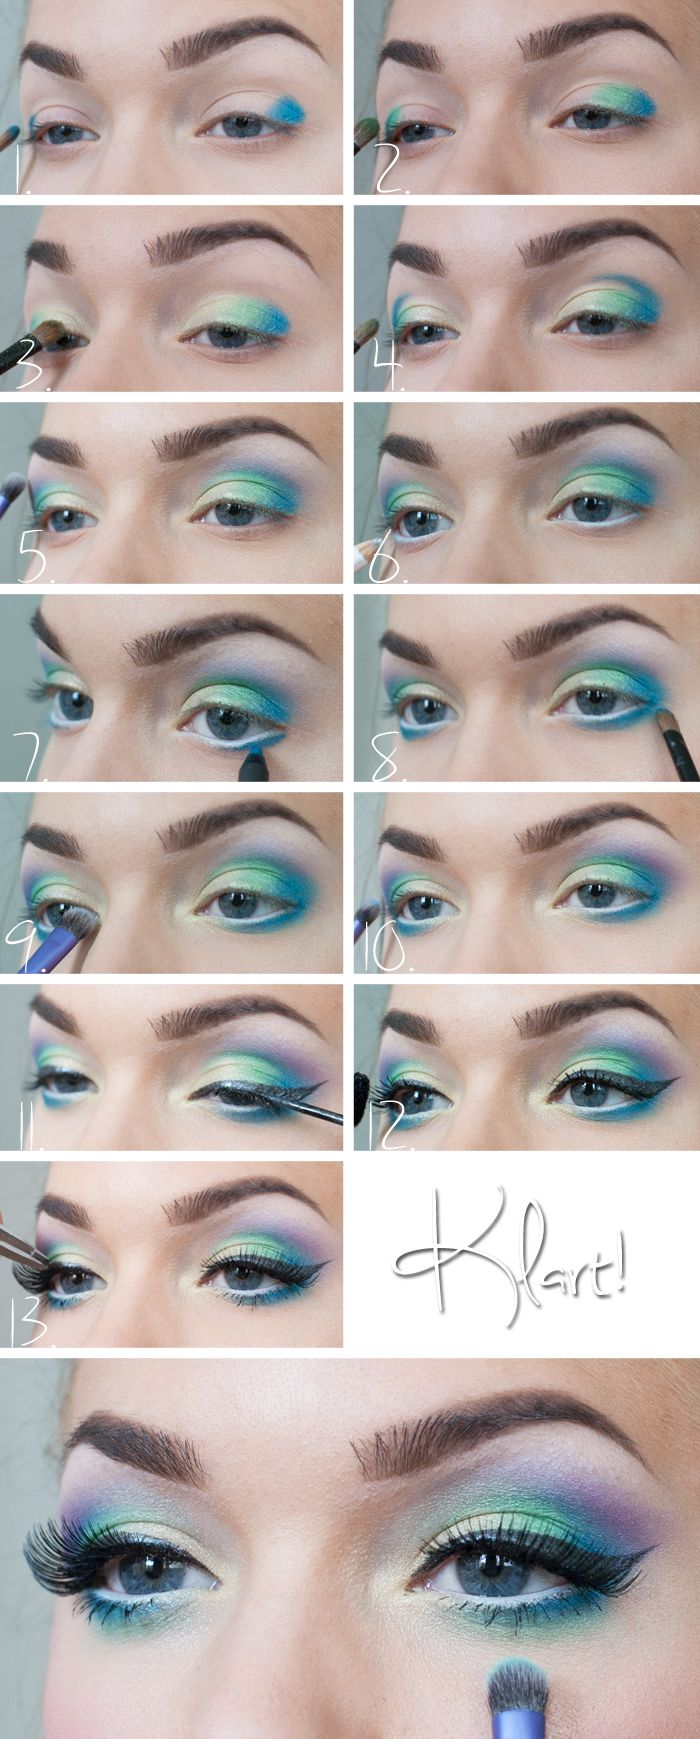 """Like A Rainbow - Tutorial"" by Linda Hallberg (05/29/13)"